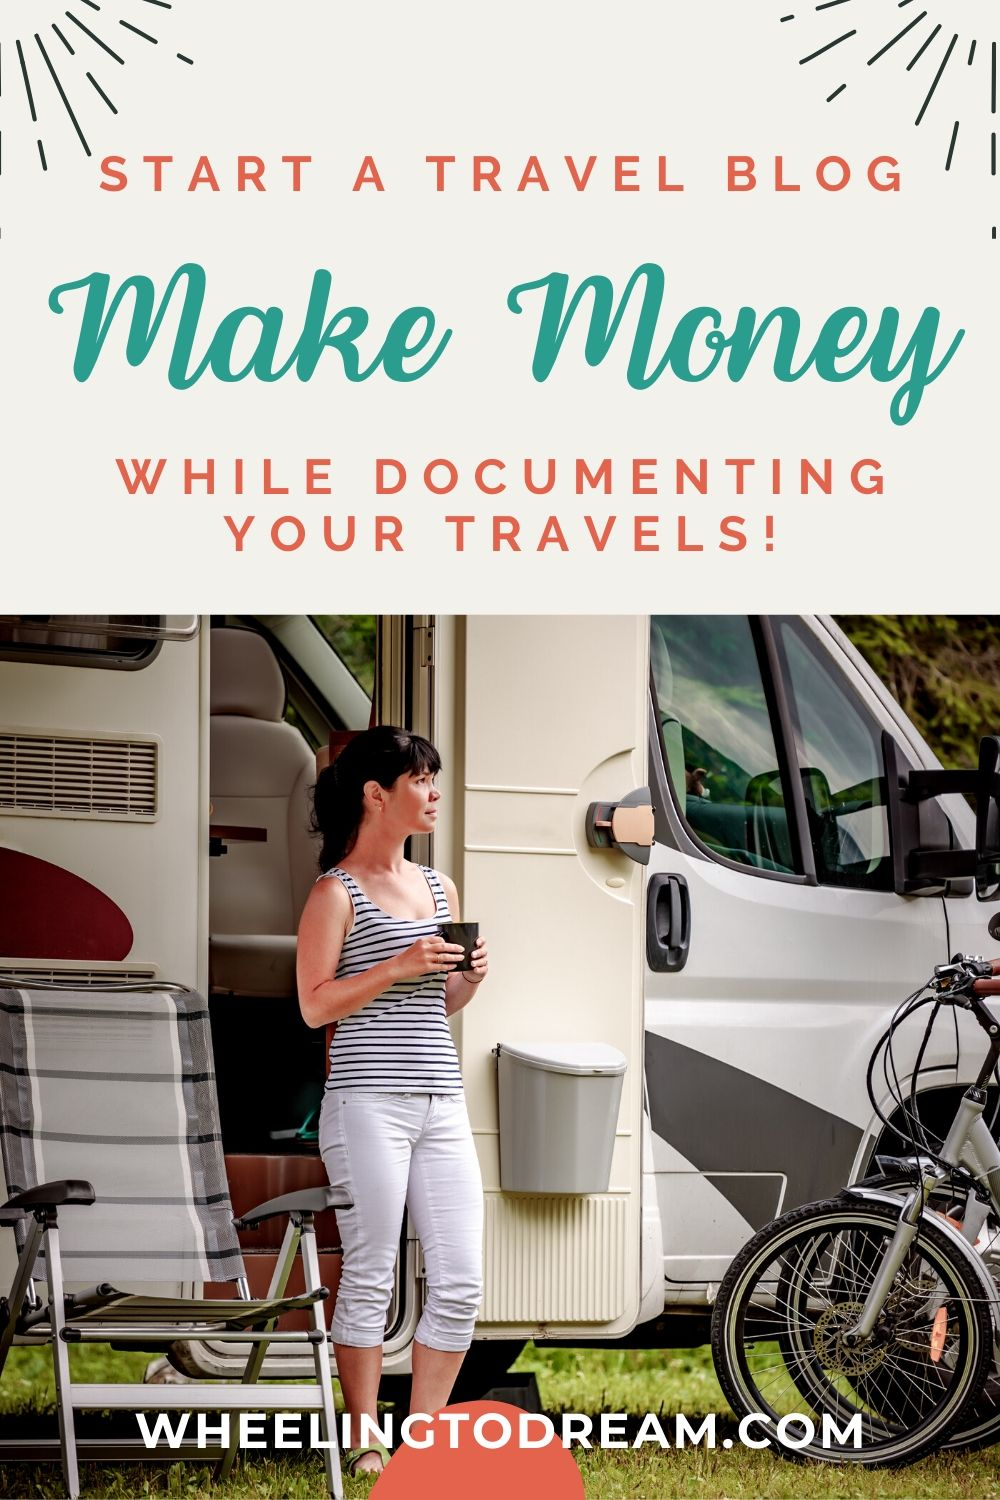 This is just what I was looking for! Are you traveling full-time and wondering how you can make money traveling? Learn how to start a blog and make money online from it so it can help you fund your travels and continue to have fun. We travel full-time with kids and blogging is part of our method for making money to fund our travels. We enjoy the full-time RV lifestyle so much we turned it into a way to make money for us. Are you ready to start a blog? #startablog #travelblog #makemoneyonline